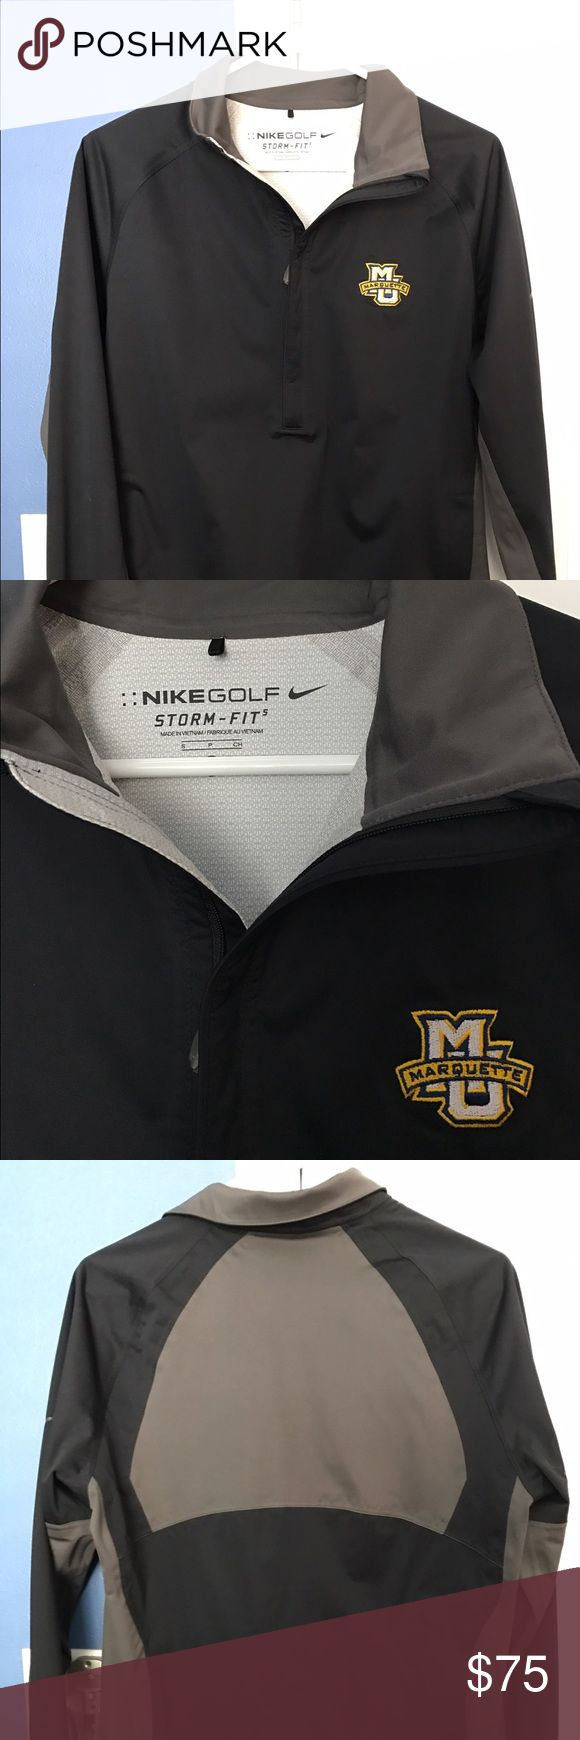 Men's Marquette University NIKE Storm Fit Rainsuit Men's SMALL black Nike waterproof rain jacket and pants. Like new condition. Great for the links or if you have to be out in the rain for a time period. Nike Jackets & Coats Raincoats